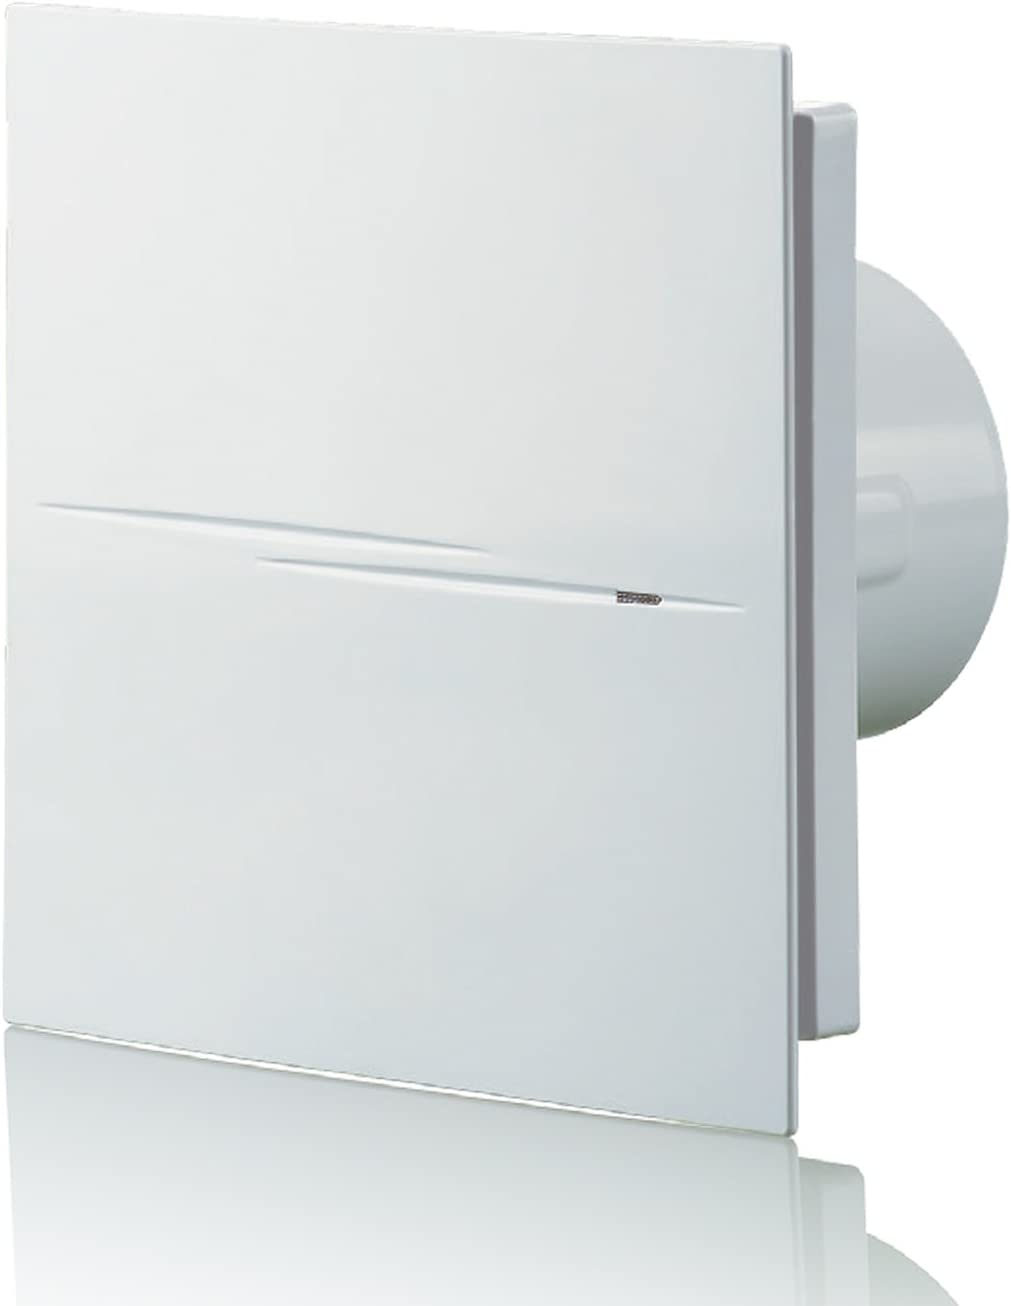 Blauberg UK 100Calm Design Low Noise Energy Efficient - Ventilador extractor de 100 mm estándar, Blanco brillante